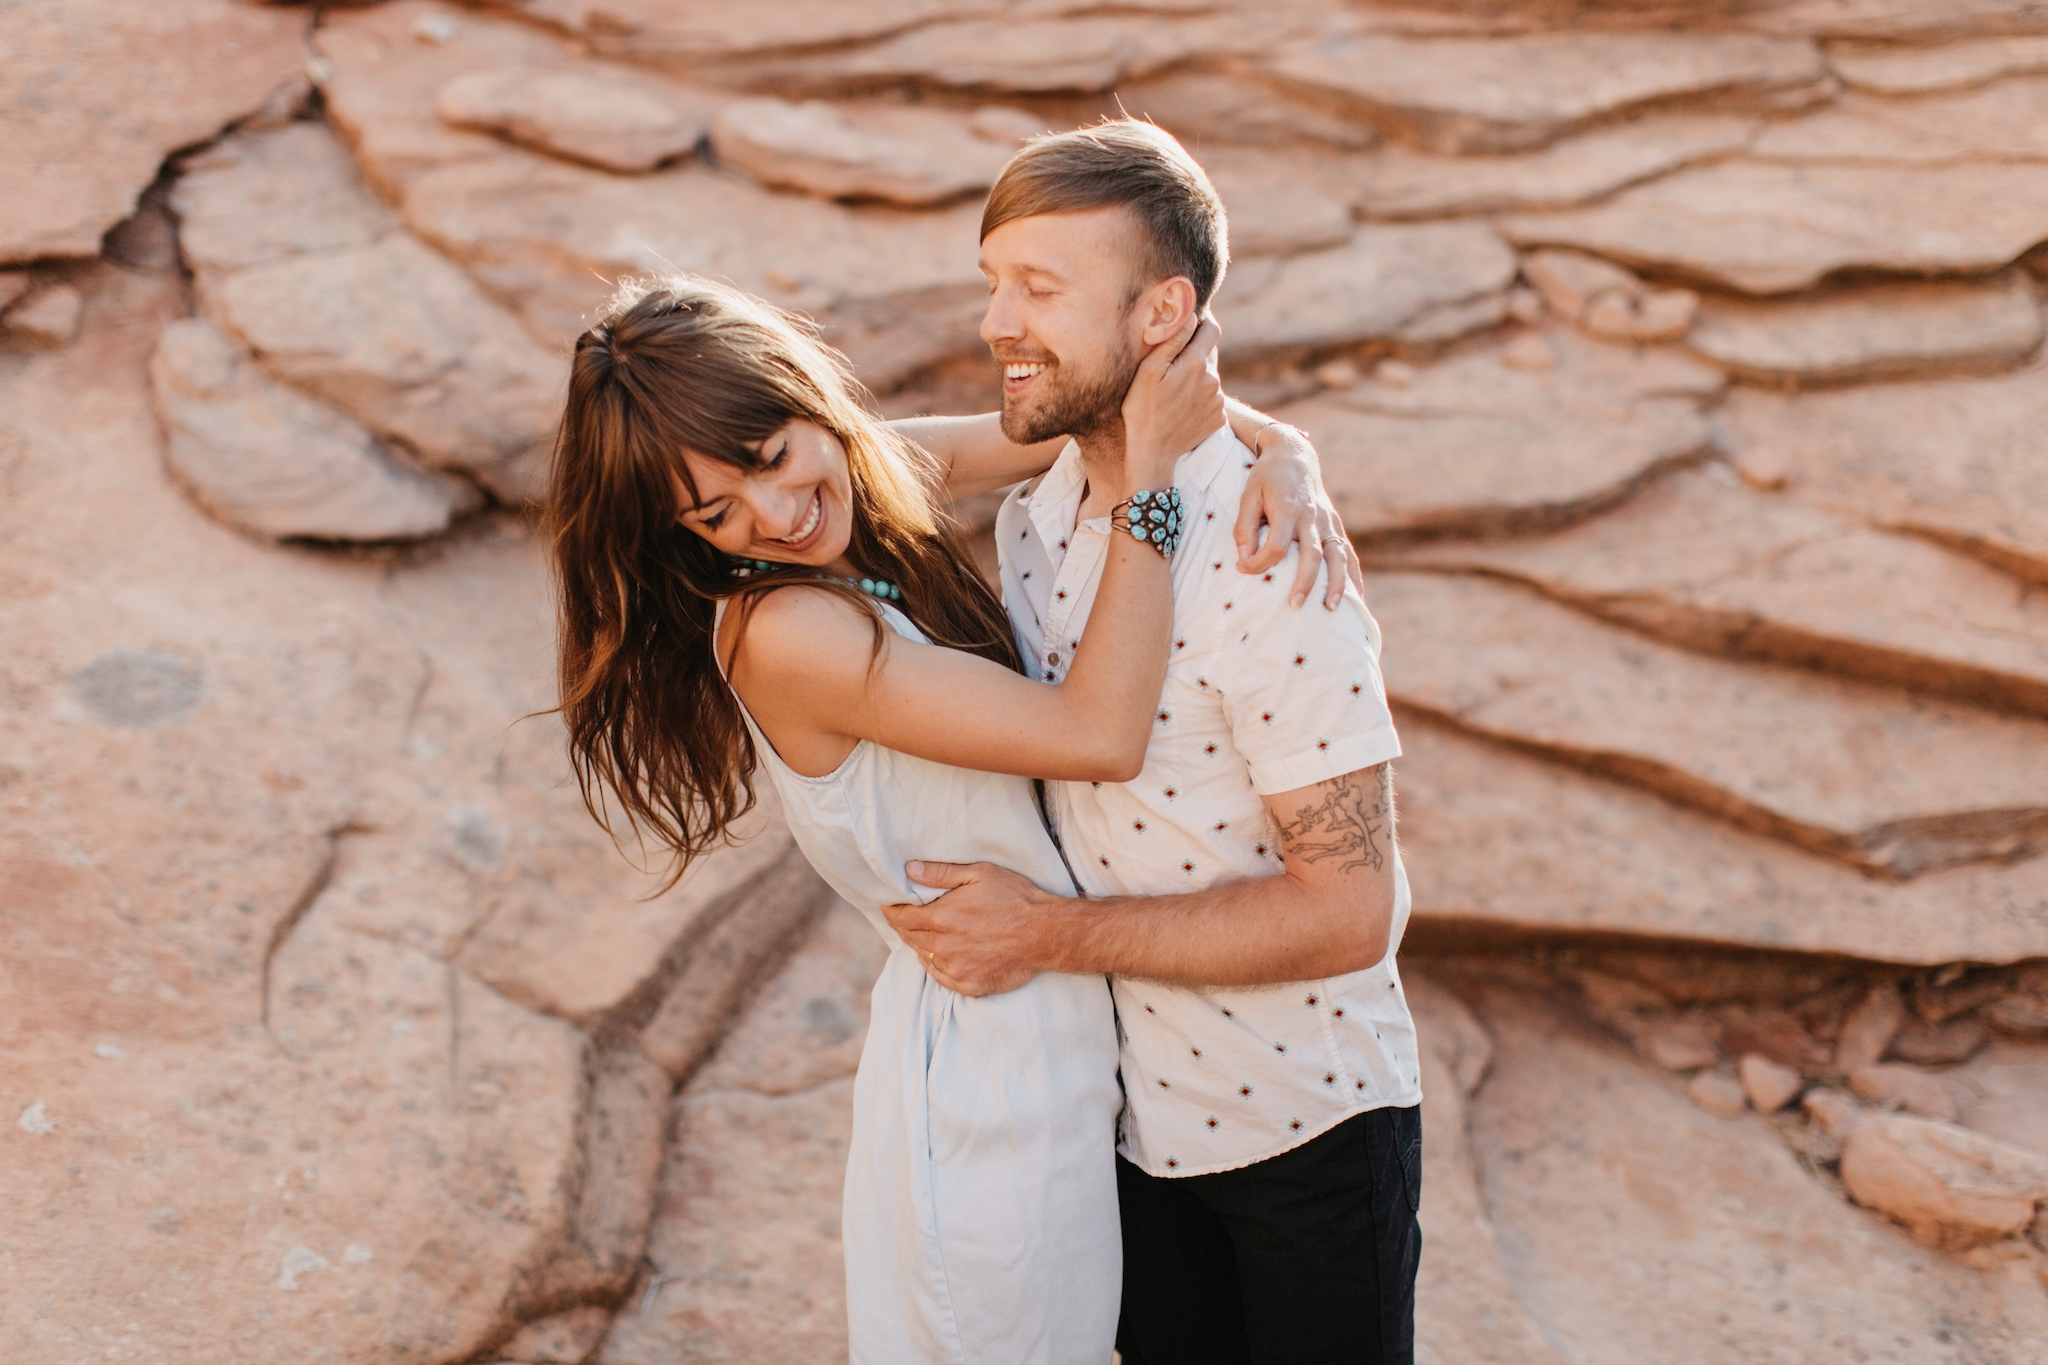 zion - engagement - photography 200.jpg